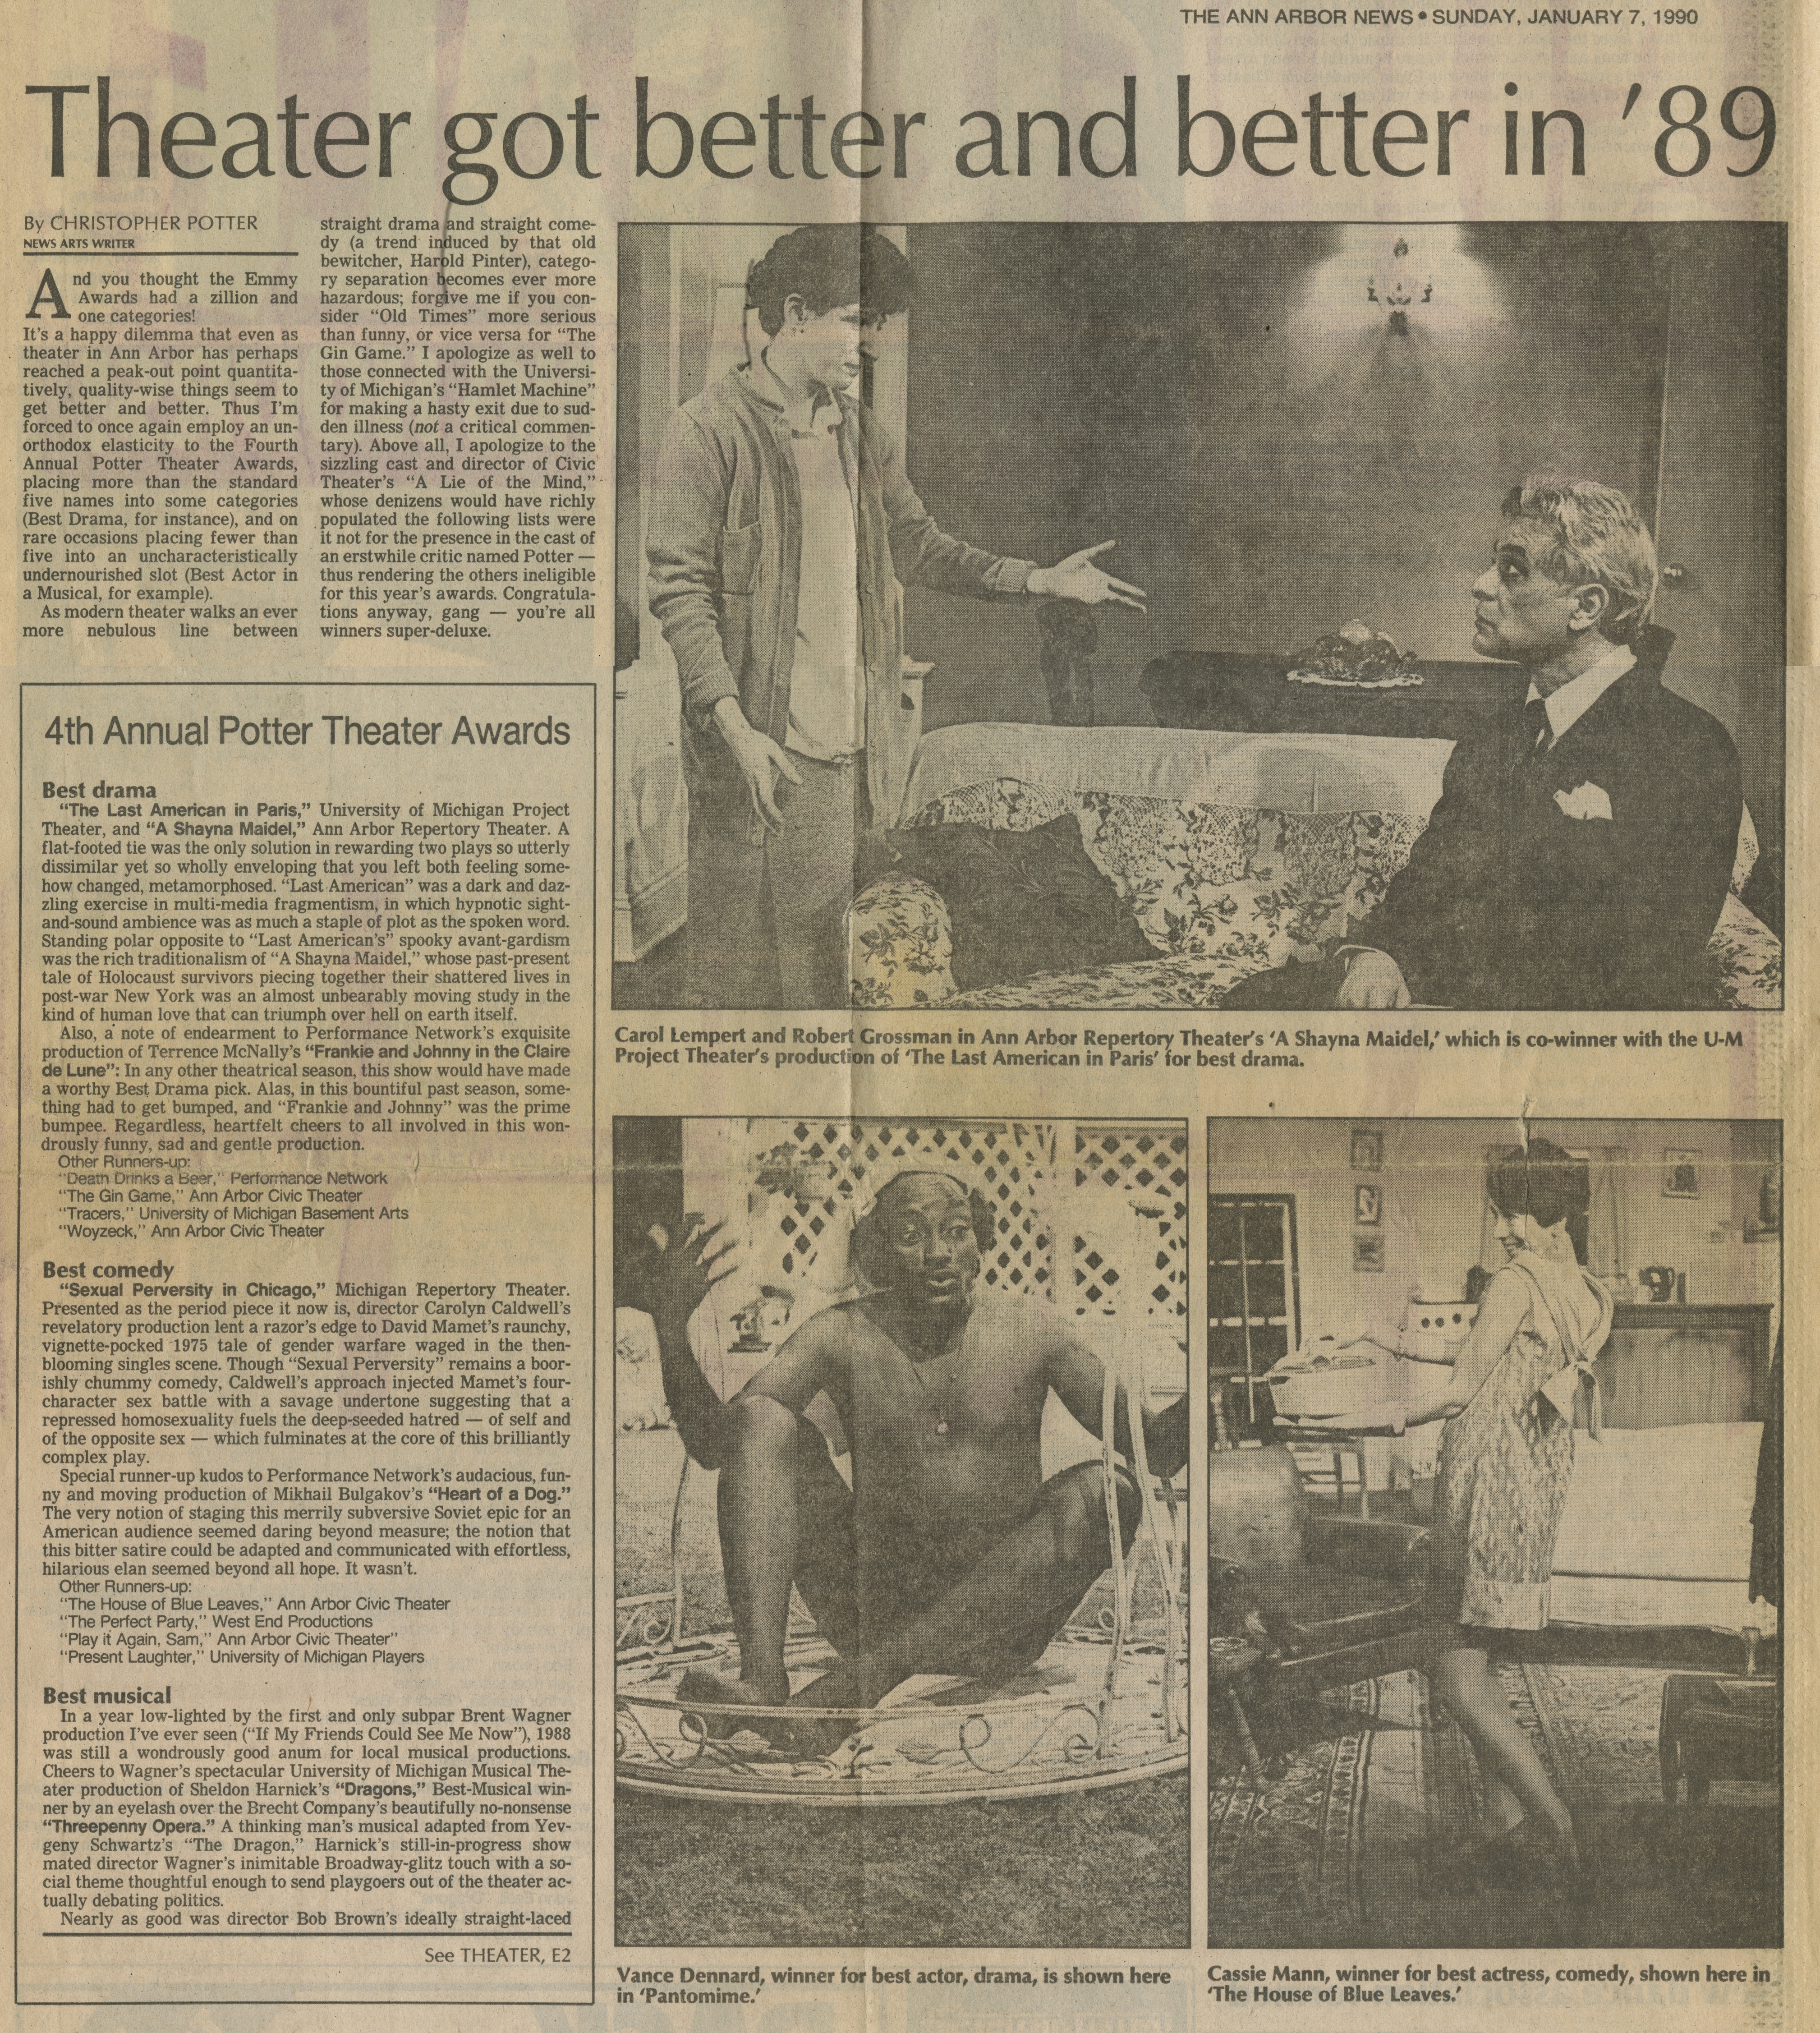 Theater got better and better in '89 image